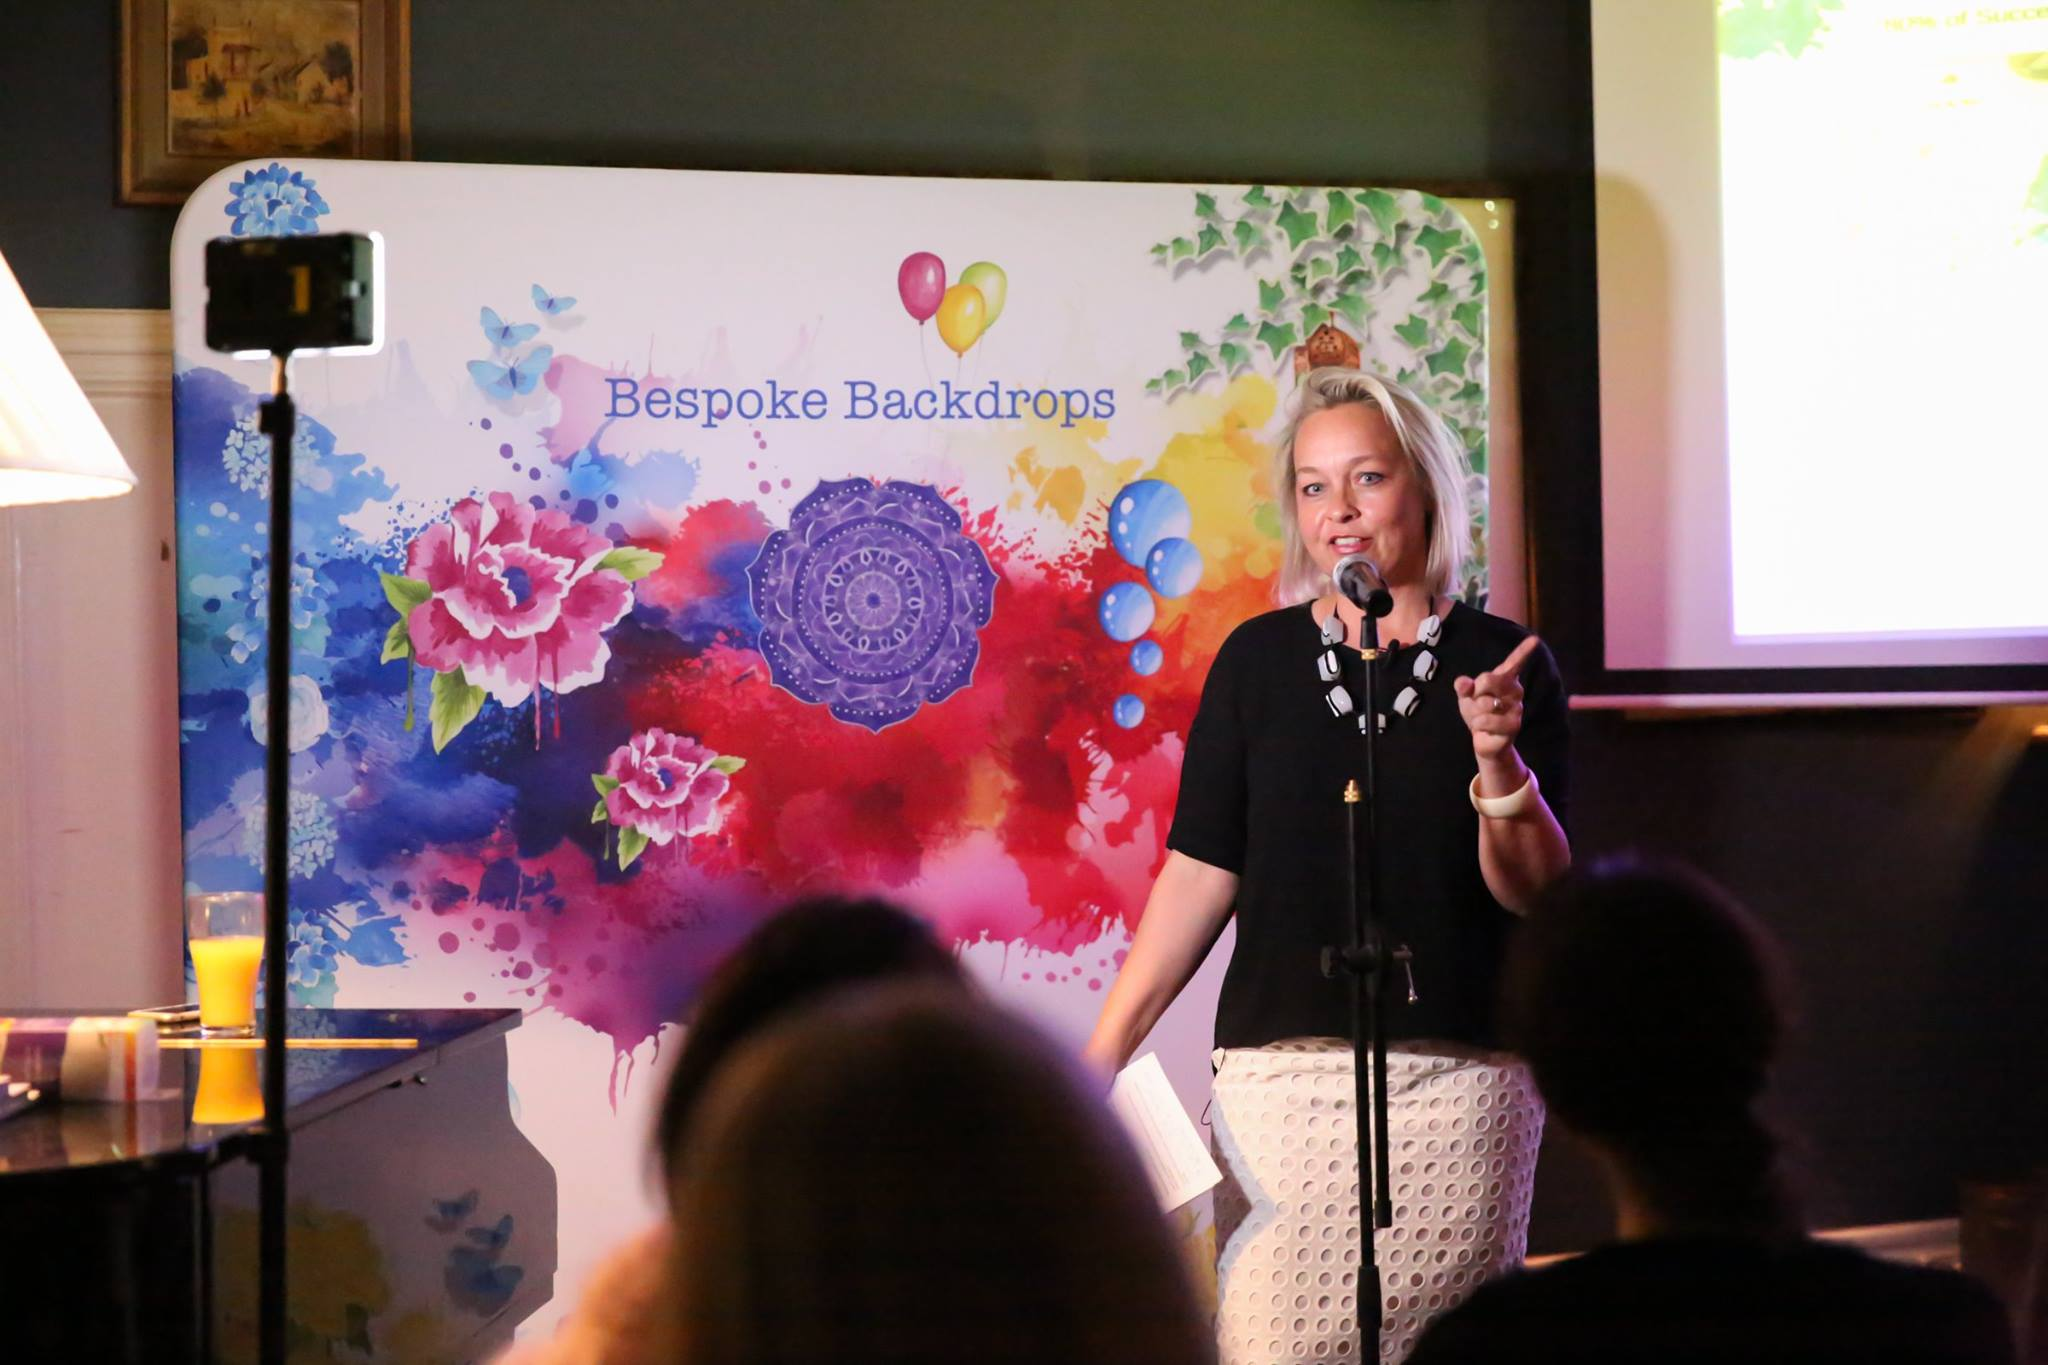 In action, our fabulous featured evening presenter, Emma Veiga-Malta, artist & founder Bespoke Backdrops, who shared her inspiring and epic story, 'A Creative Journey - From Fabulous to Fear & Back Again'